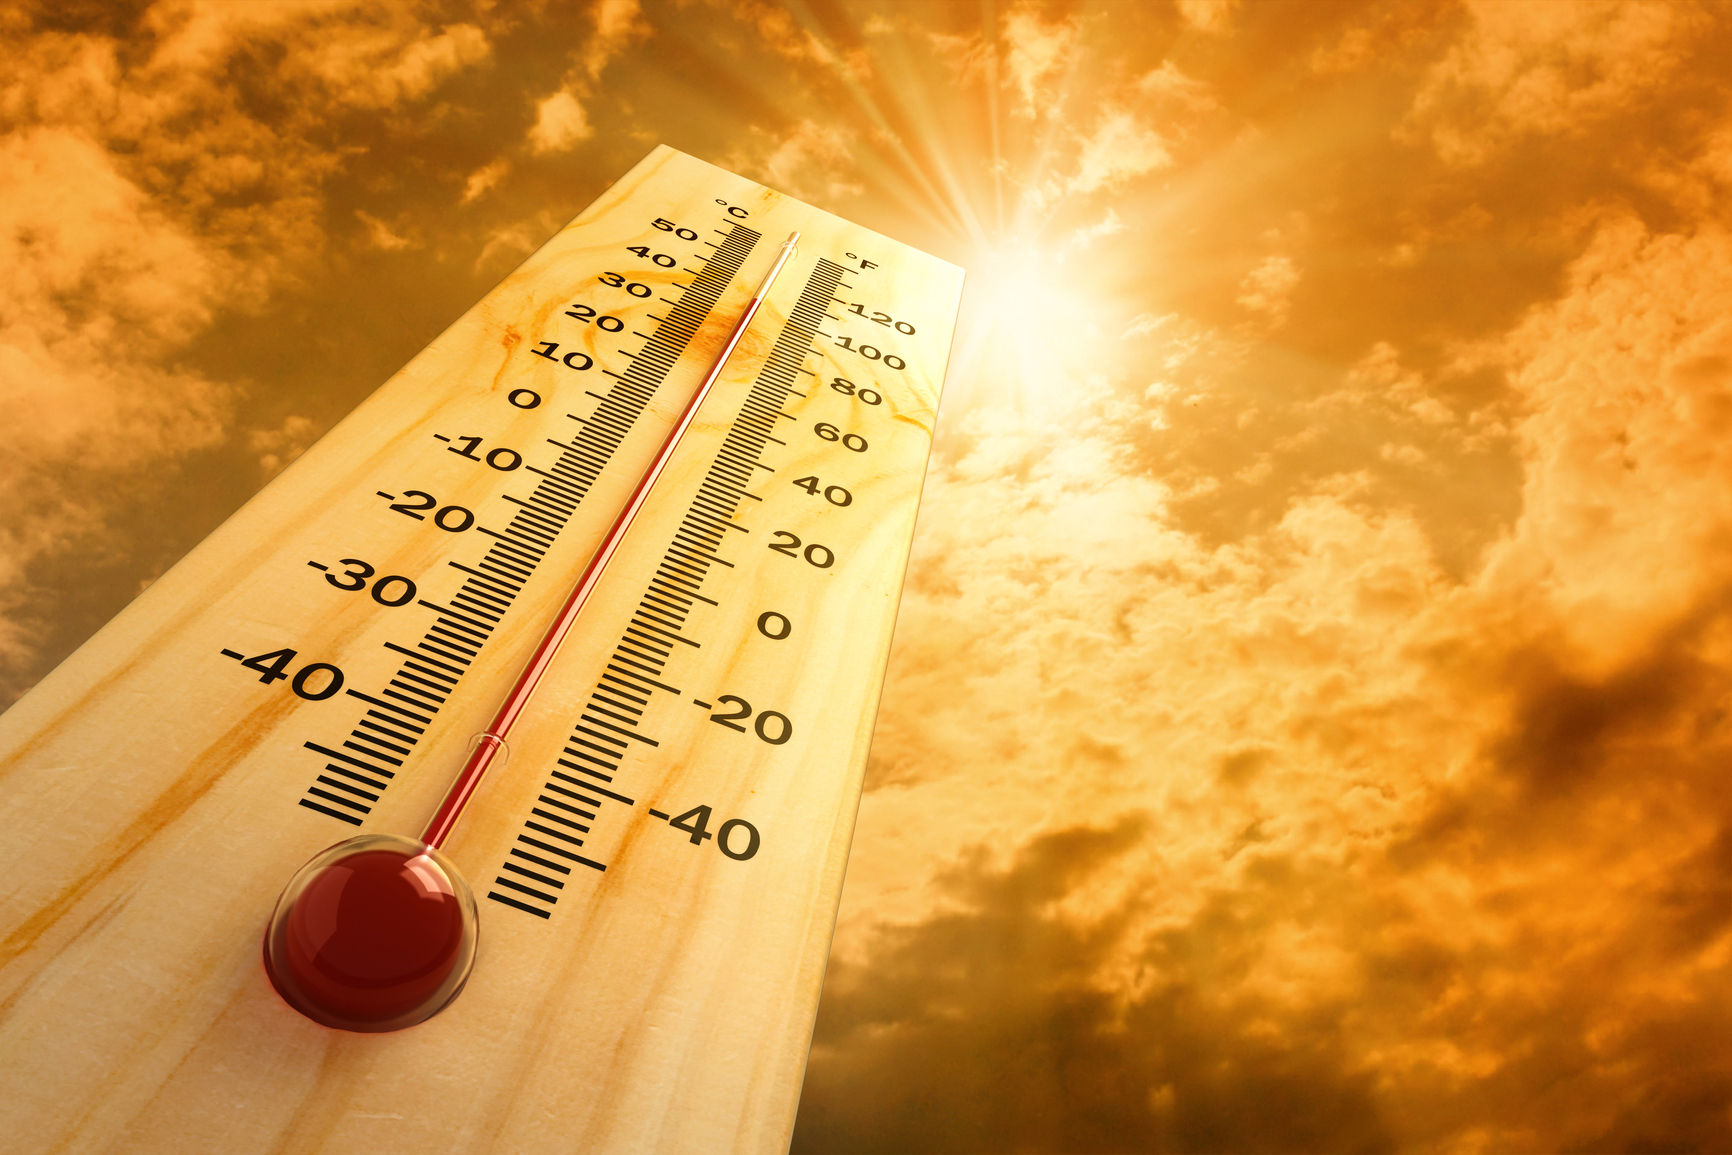 Slovenia bracing for hottest week of the year